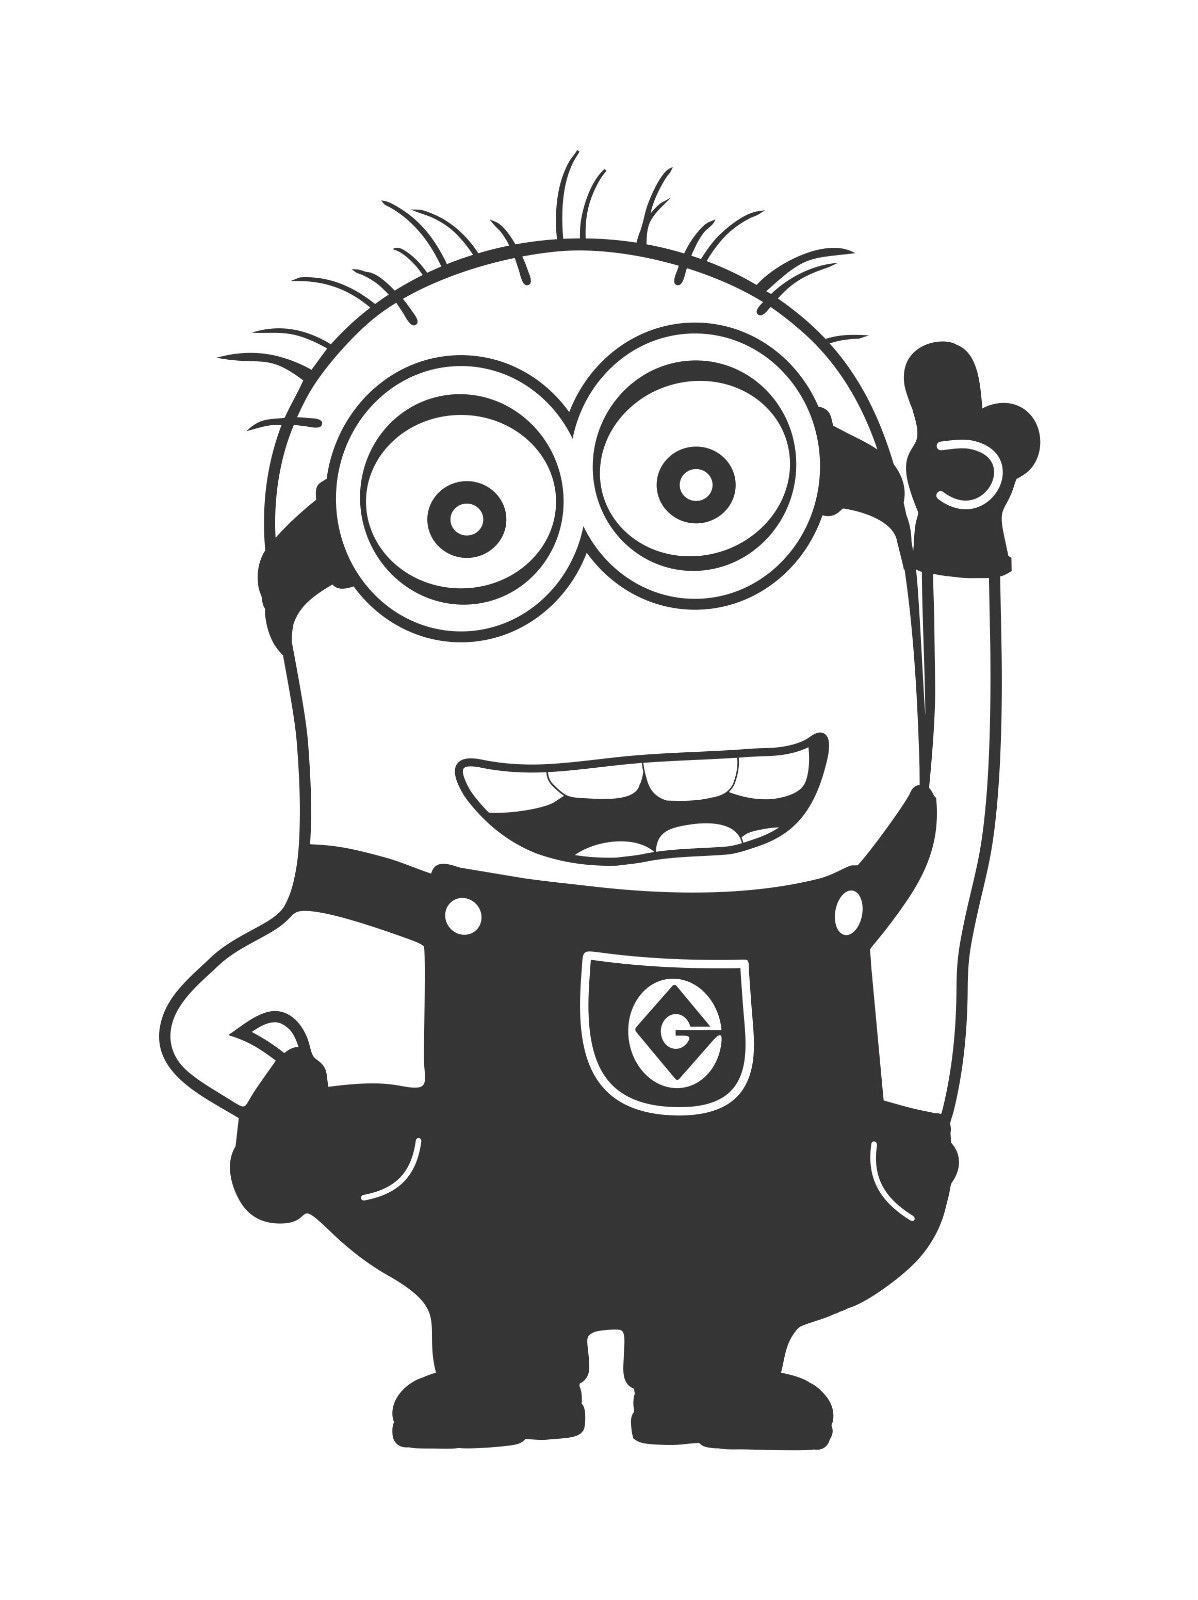 Minion Black And White Pic Despicable Me-Minion Black And White Pic Despicable Me Clipart Black And White u2013 Pencil  And In Color-5